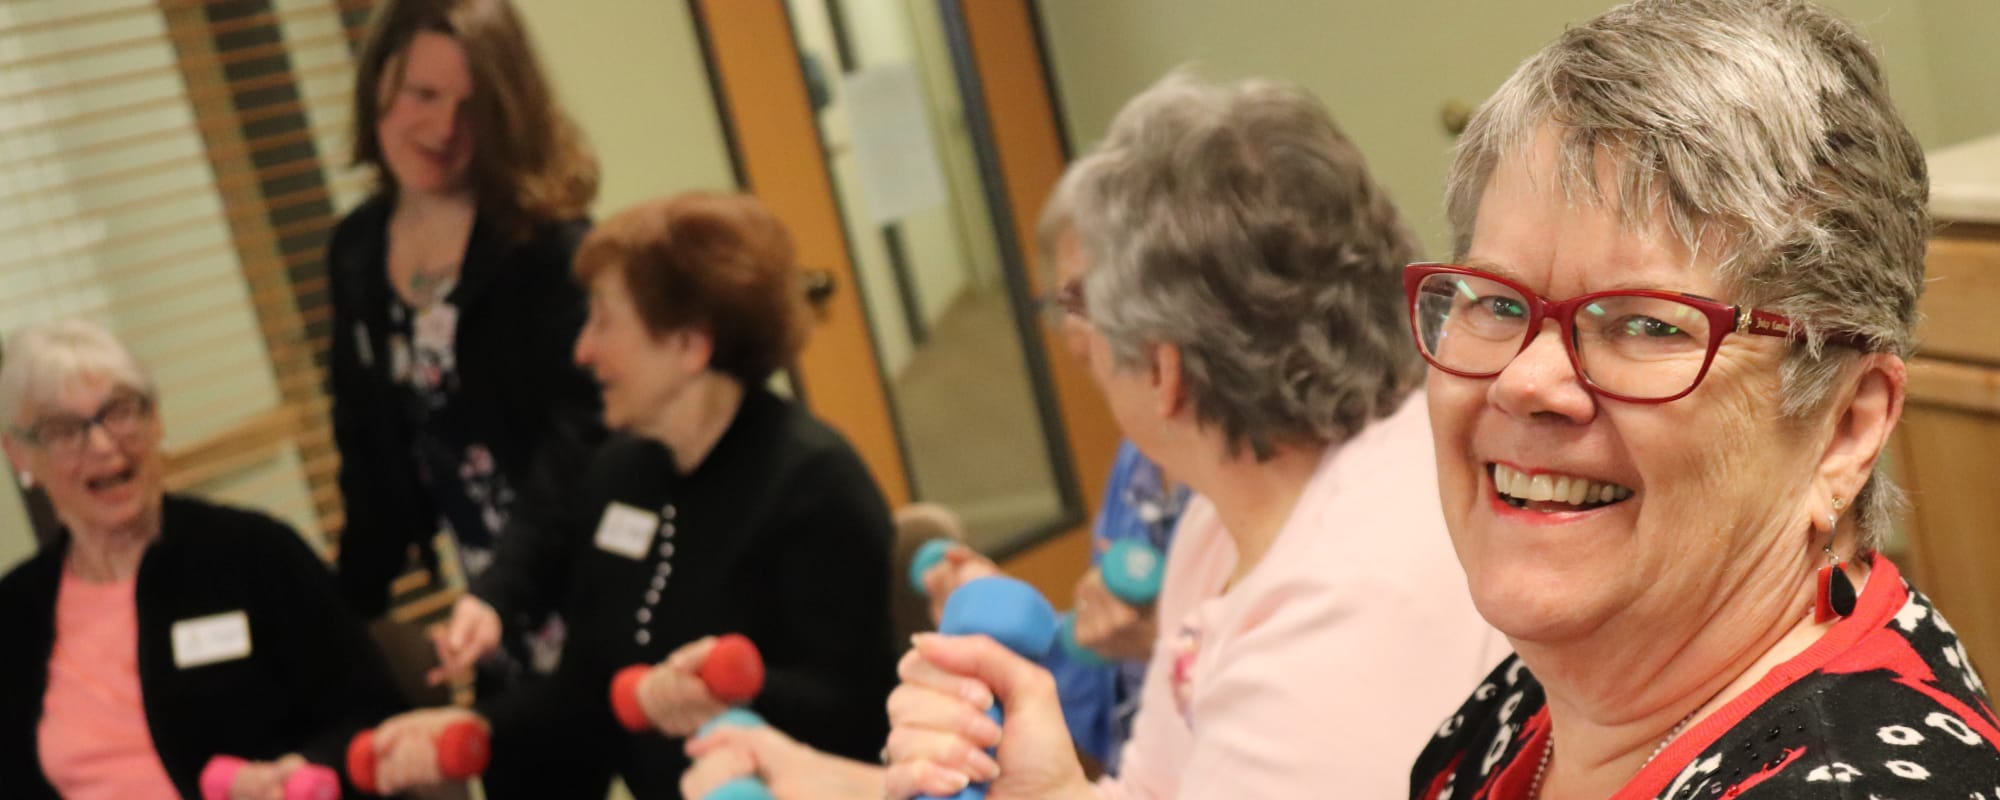 Residents enjoying fitness class at The Springs at Missoula in Missoula, Montana